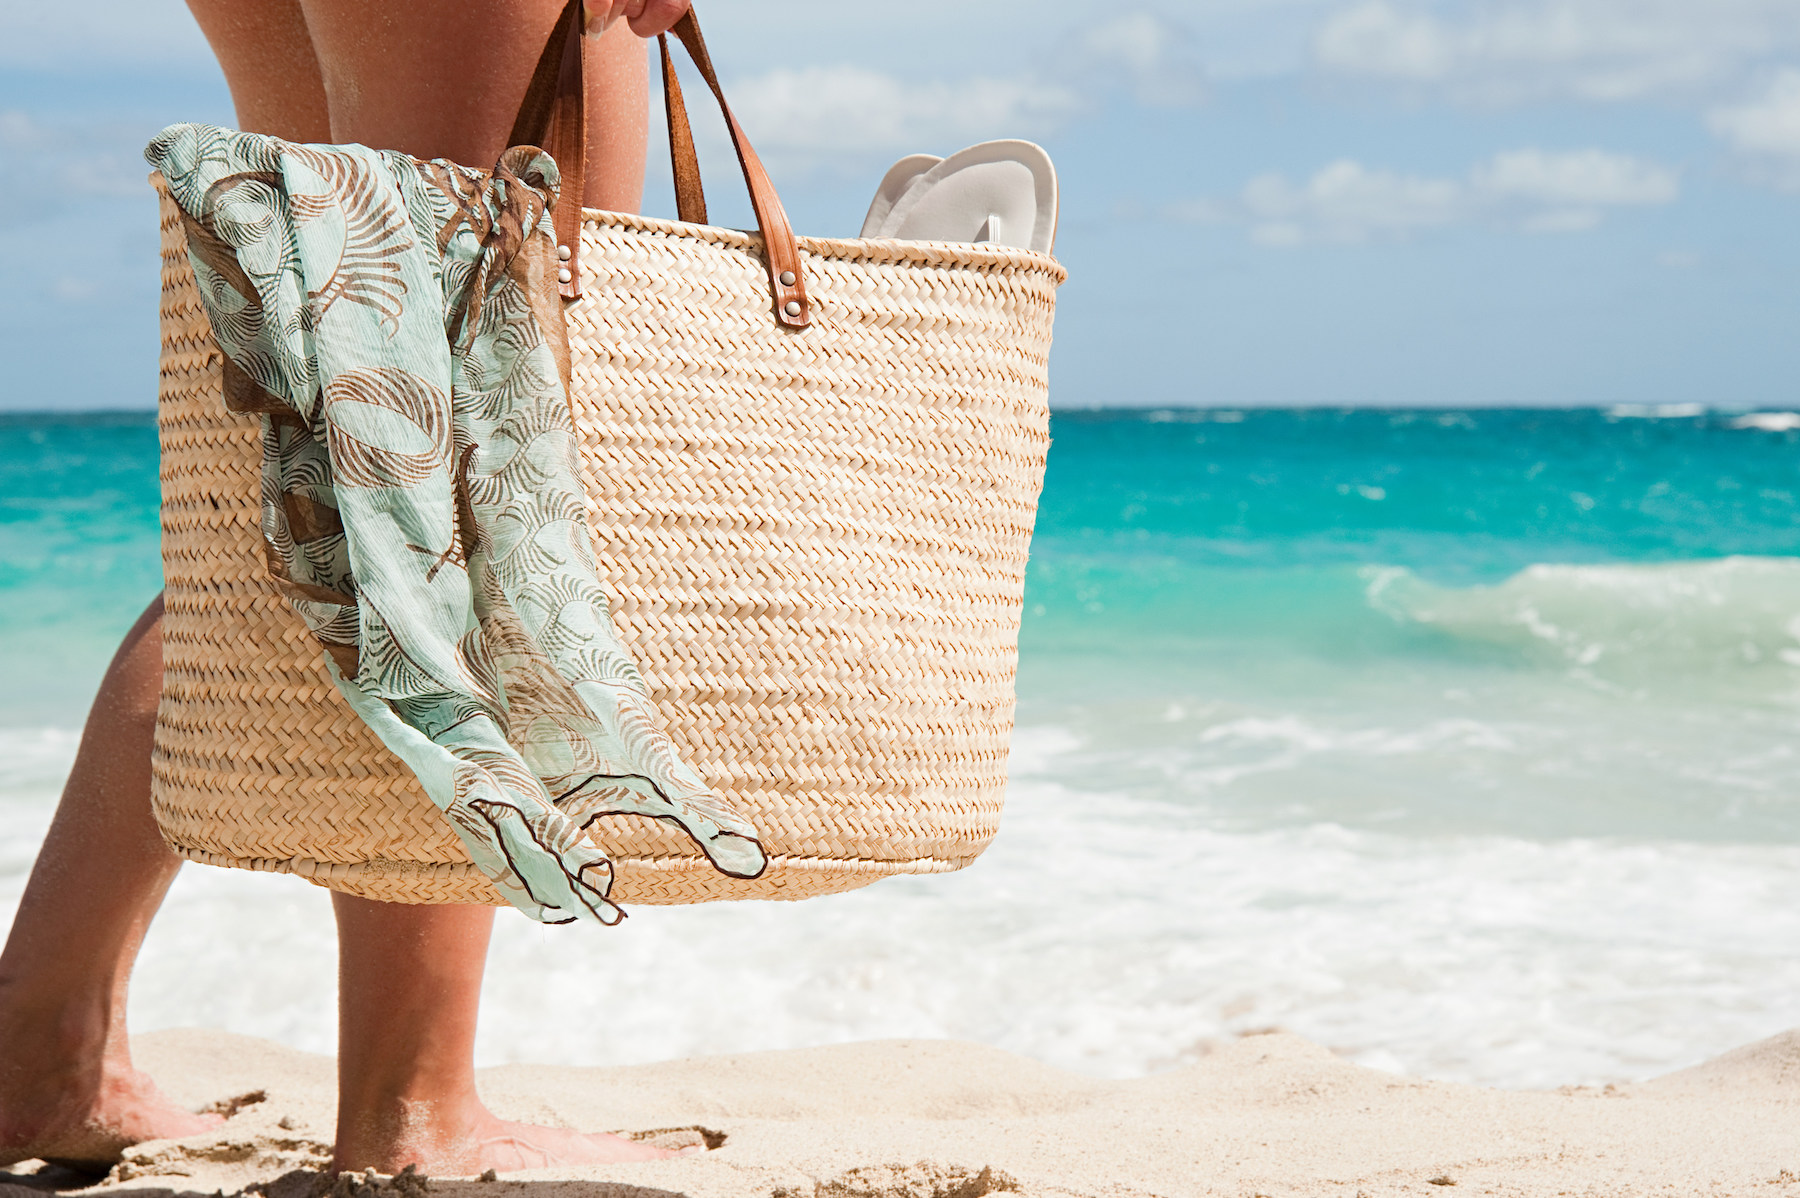 Sandals Resorts Will Give Away 31 Free 6-Night Vacations to Nurses, Moms, Teachers and Military